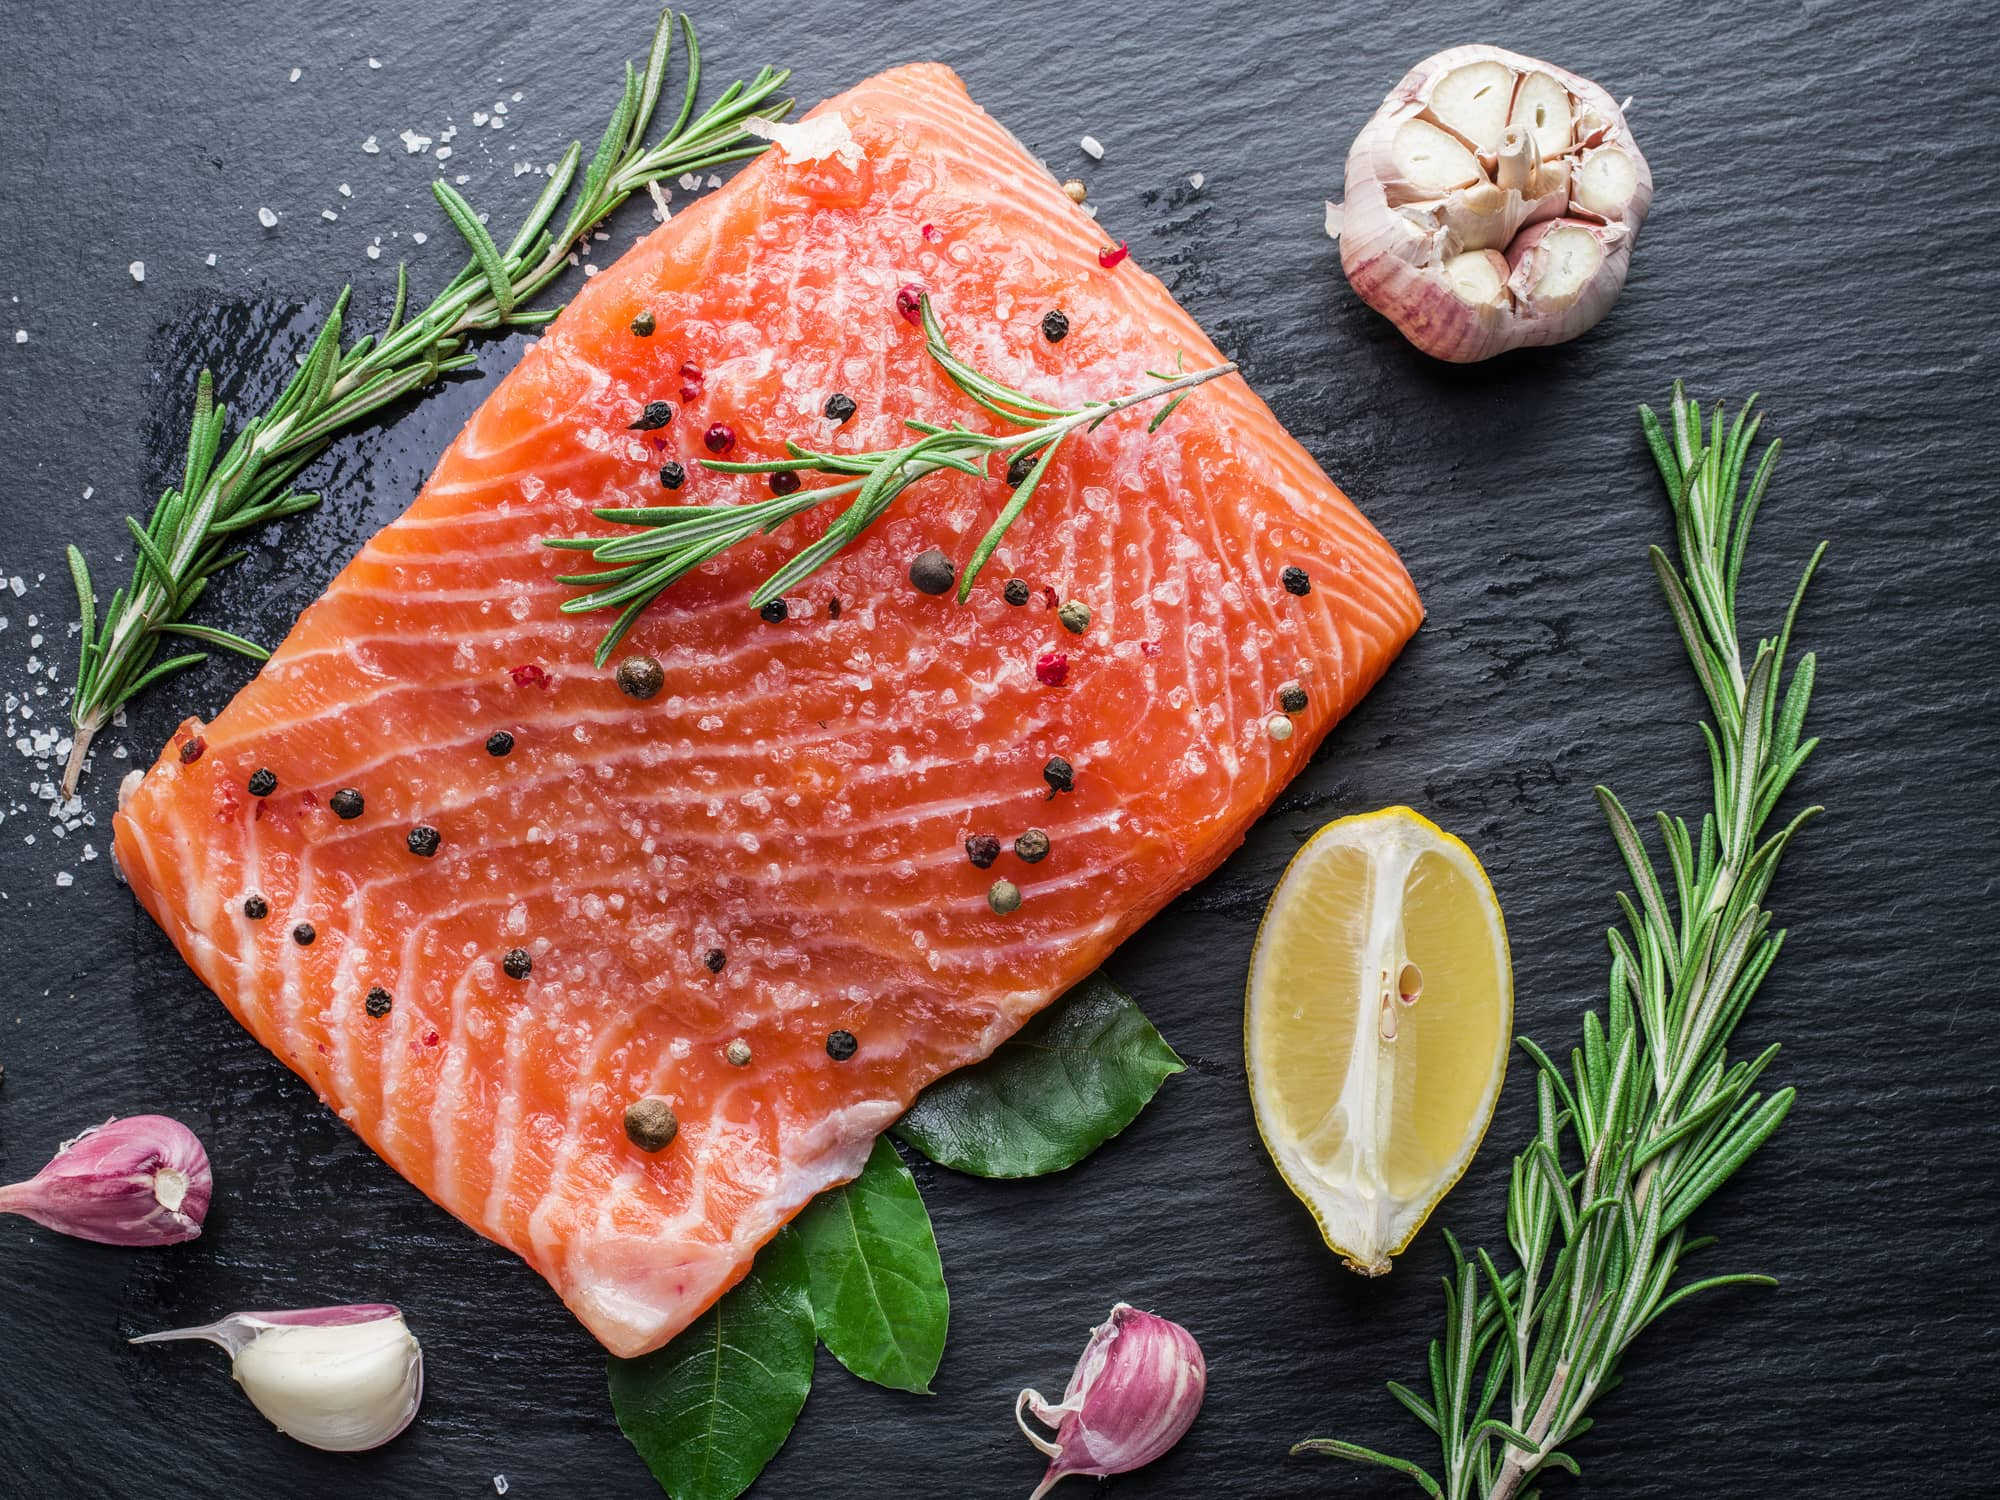 Salmon is a good source to lower the risks of cardiovascular diseases